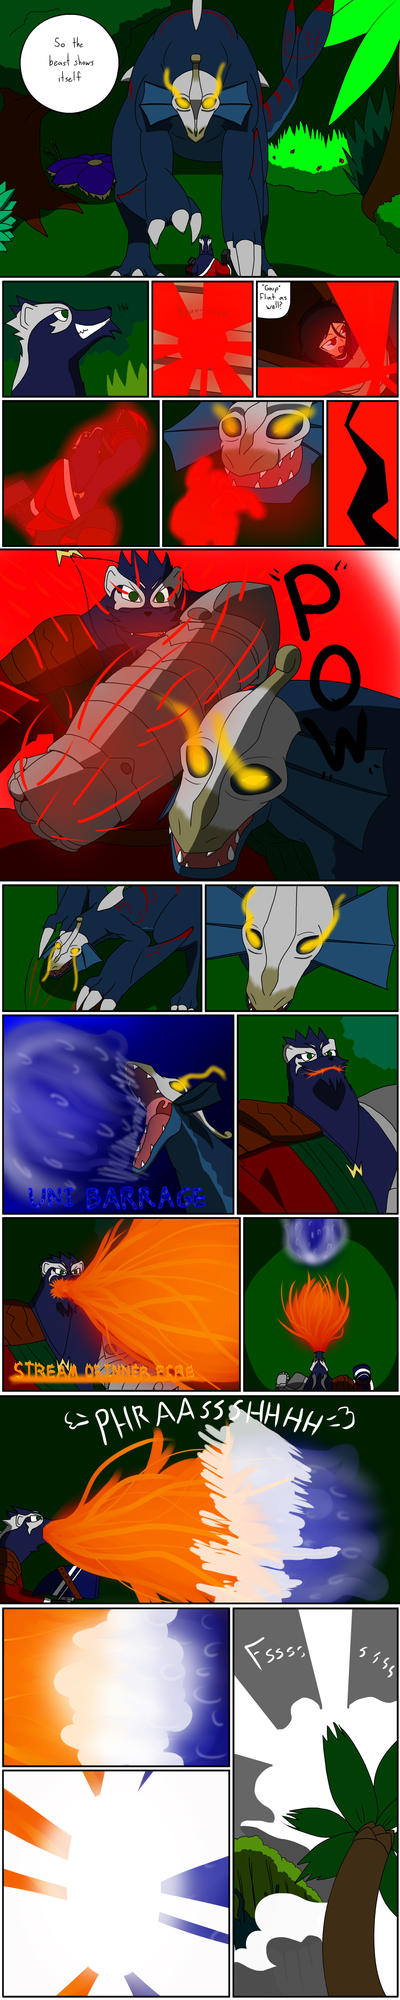 TDA Event 1: Battle of Fire and Water part 10 by SquirrelManiak